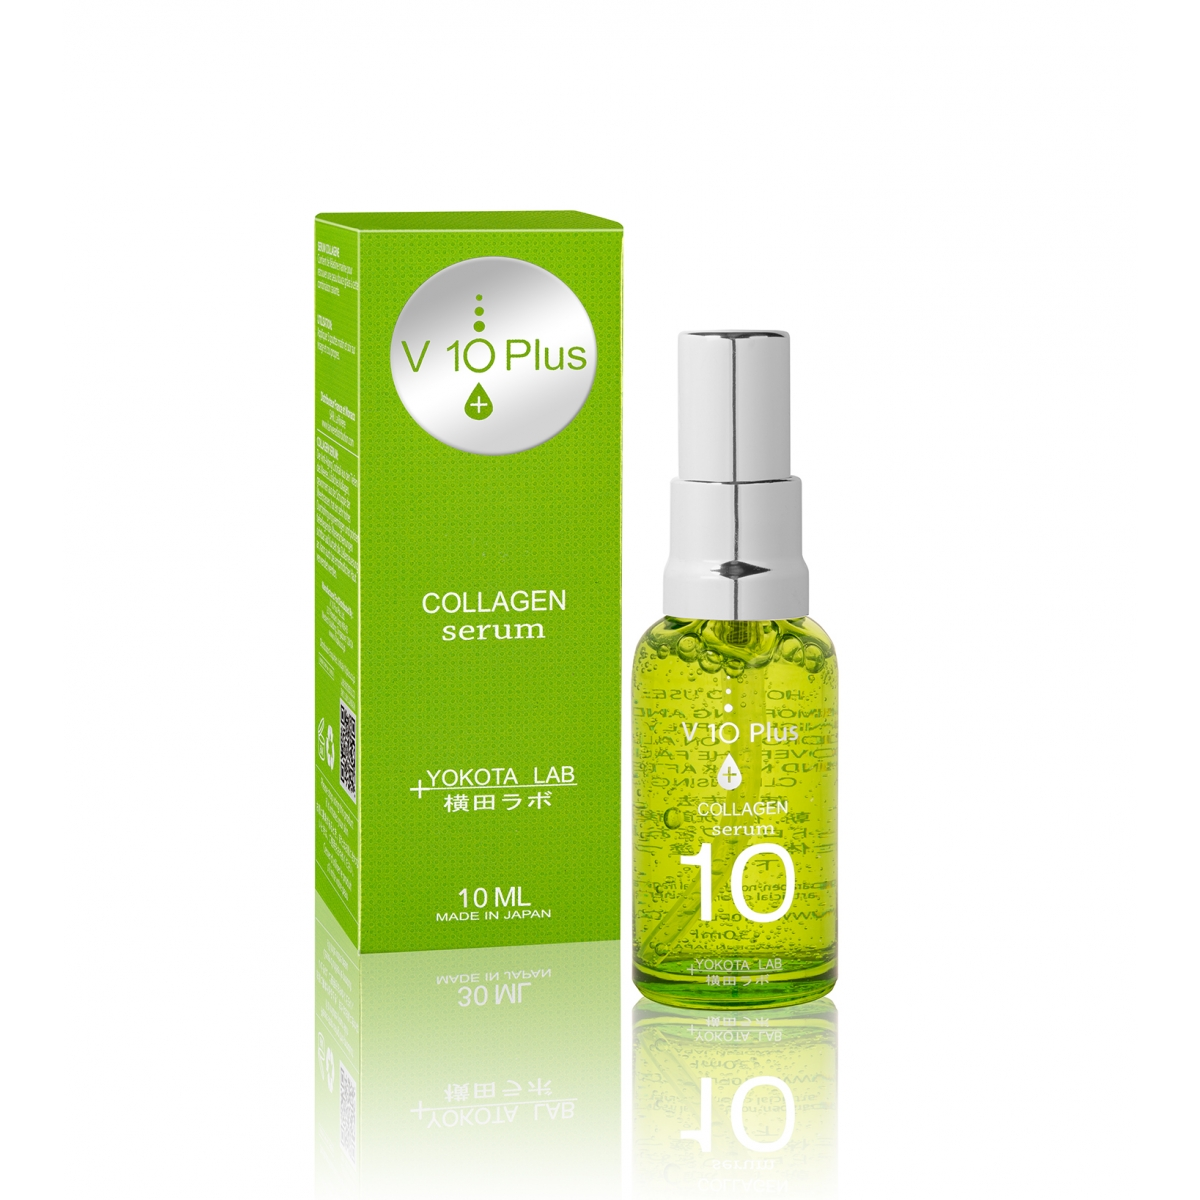 SOIN DU VISAGE - COLLAGENE SERUM V10+ (10 ml)